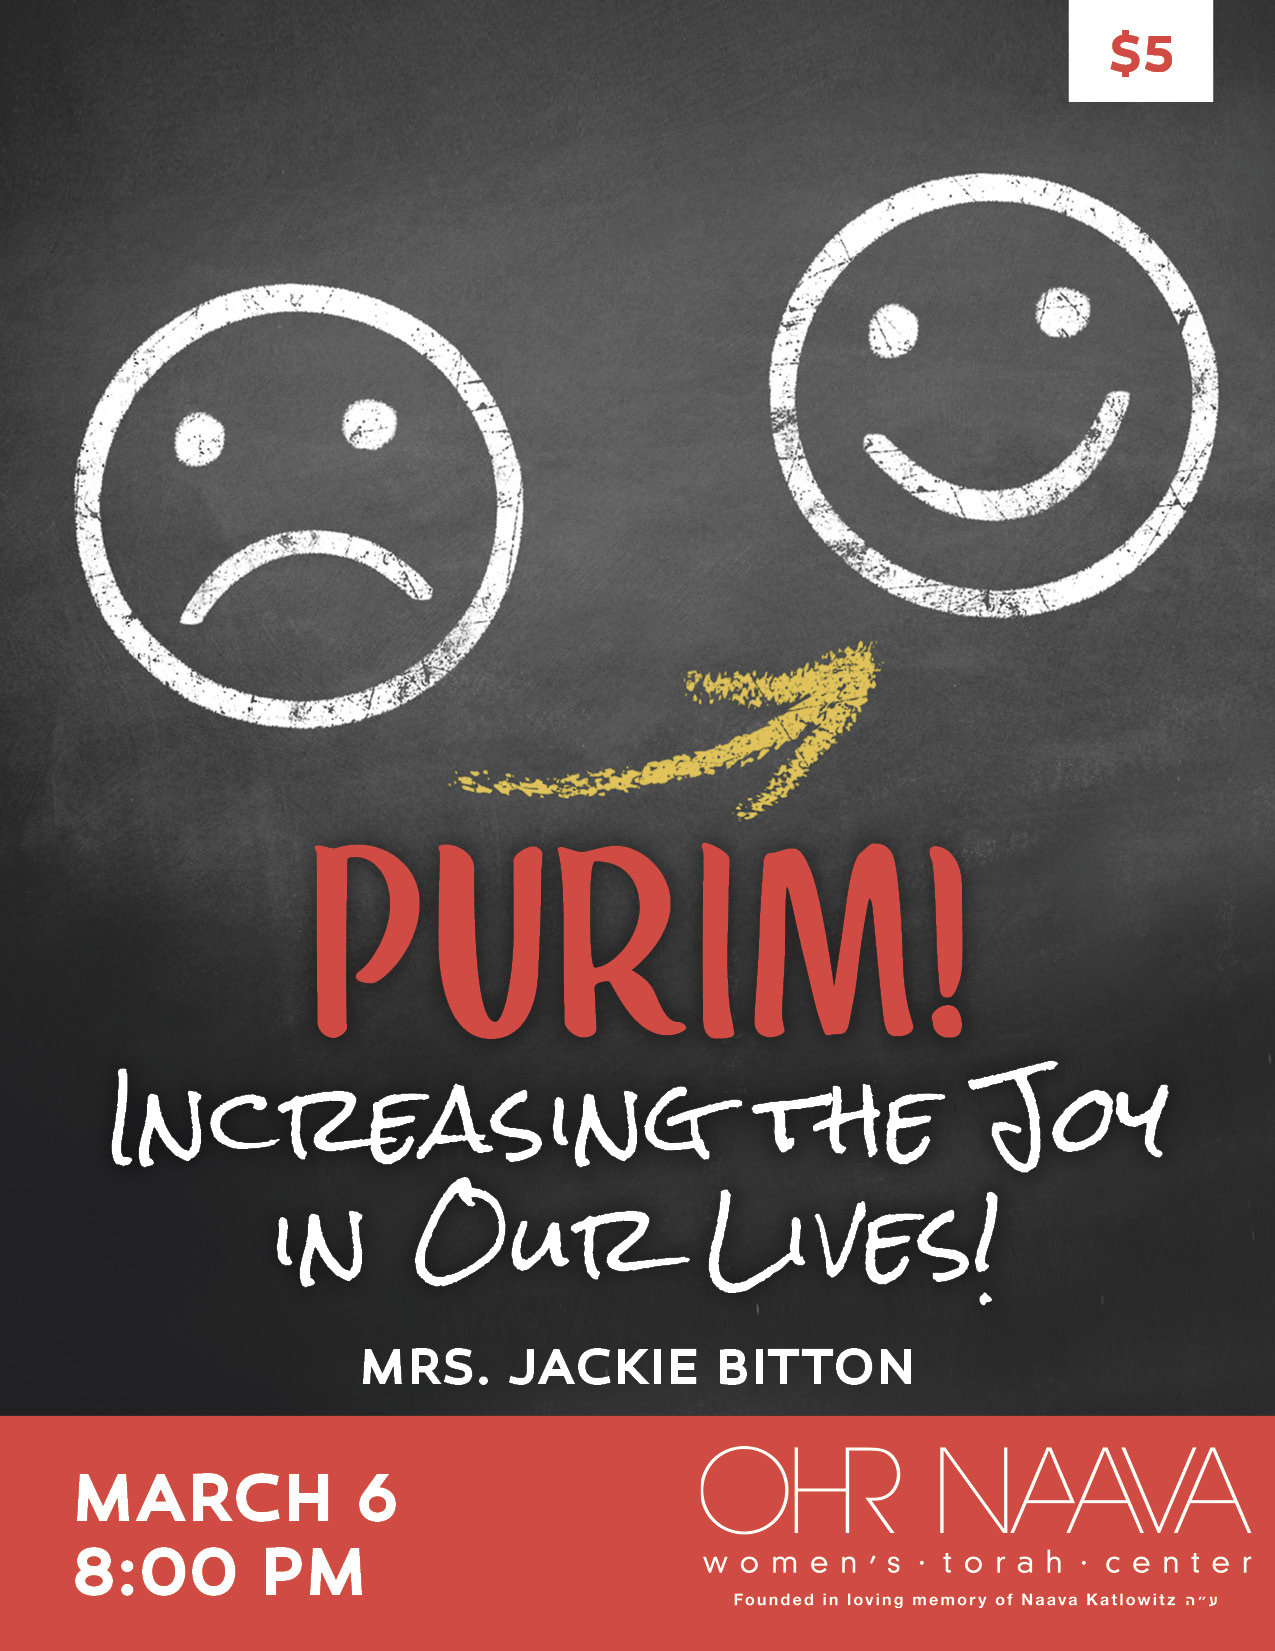 PURIM! Increasing the Joy in Our Lives!